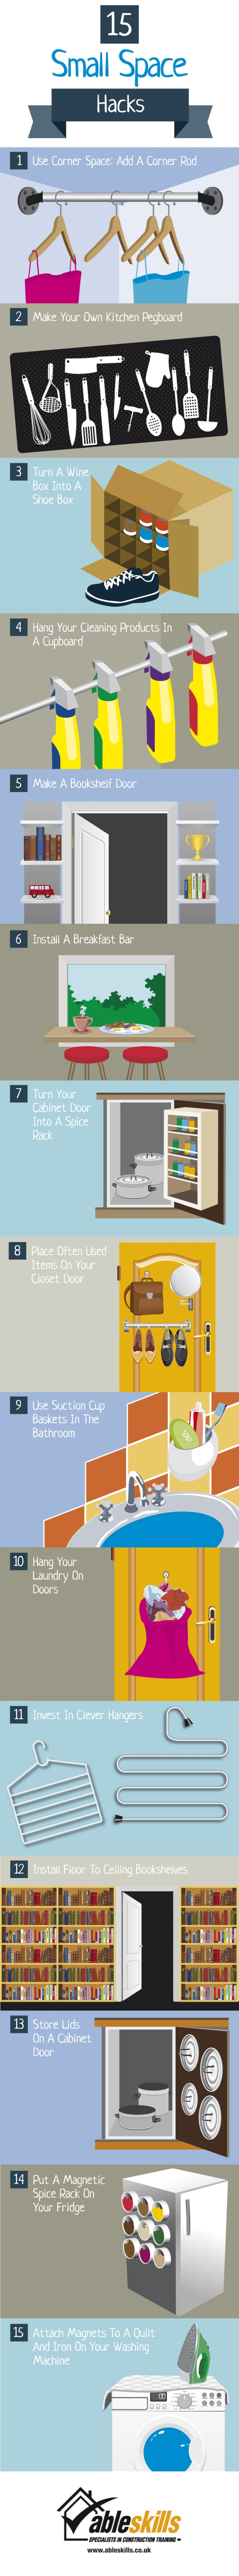 Check out these amazing 15 Small Space Hacks from Able Skills. Hopefully these ideas will help maximize your small spaces. 15 Small Space Hacks Infographic via @tipsaholic #smallspaces #hacks #lifehacks #rental #apartments